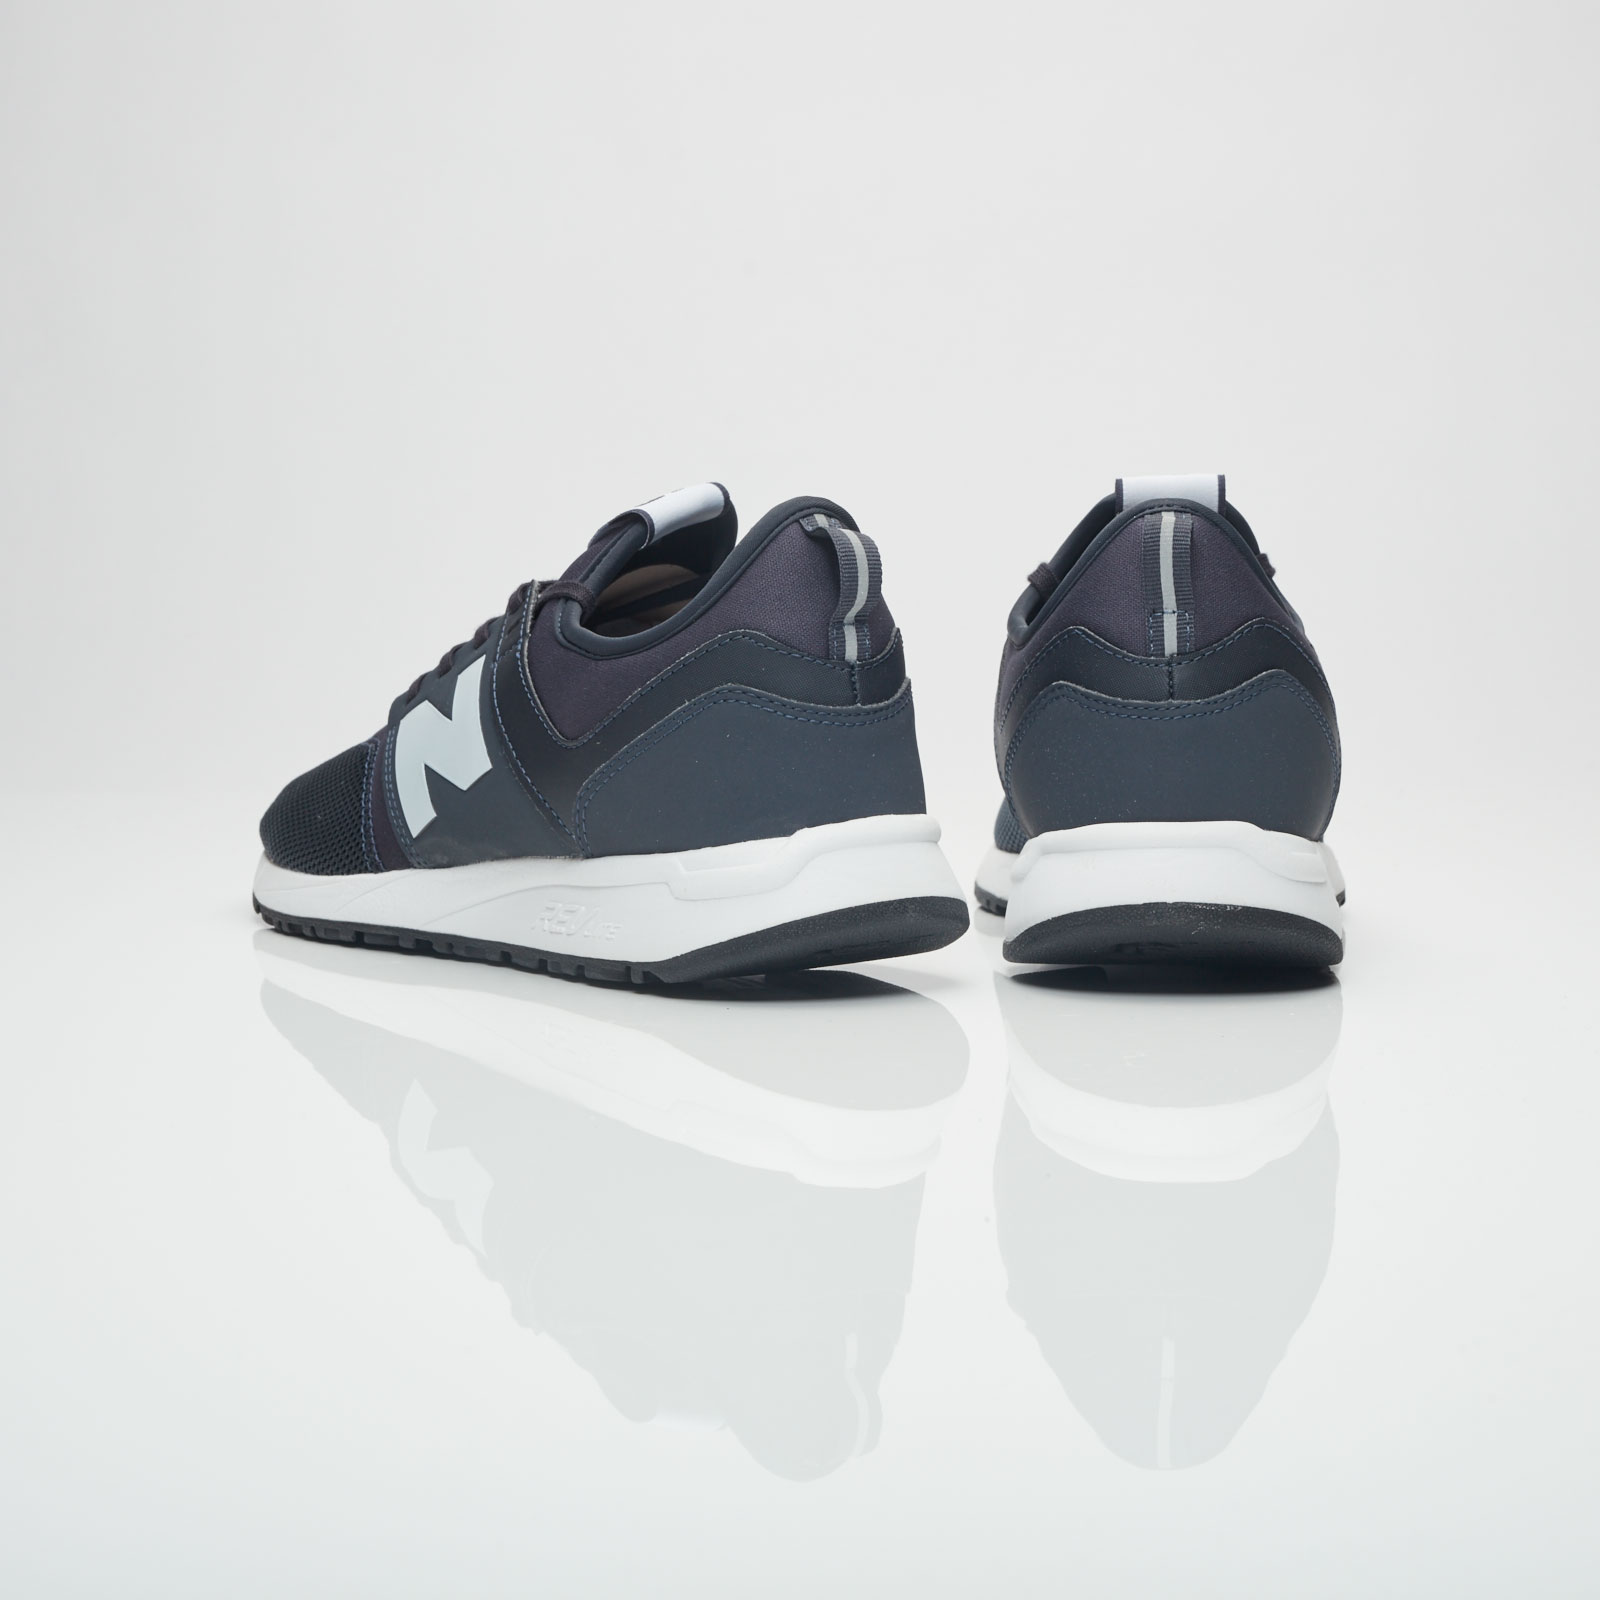 New Mrl247 Balance Sneakers I Mrl247rb Sneakersnstuff 76fgby